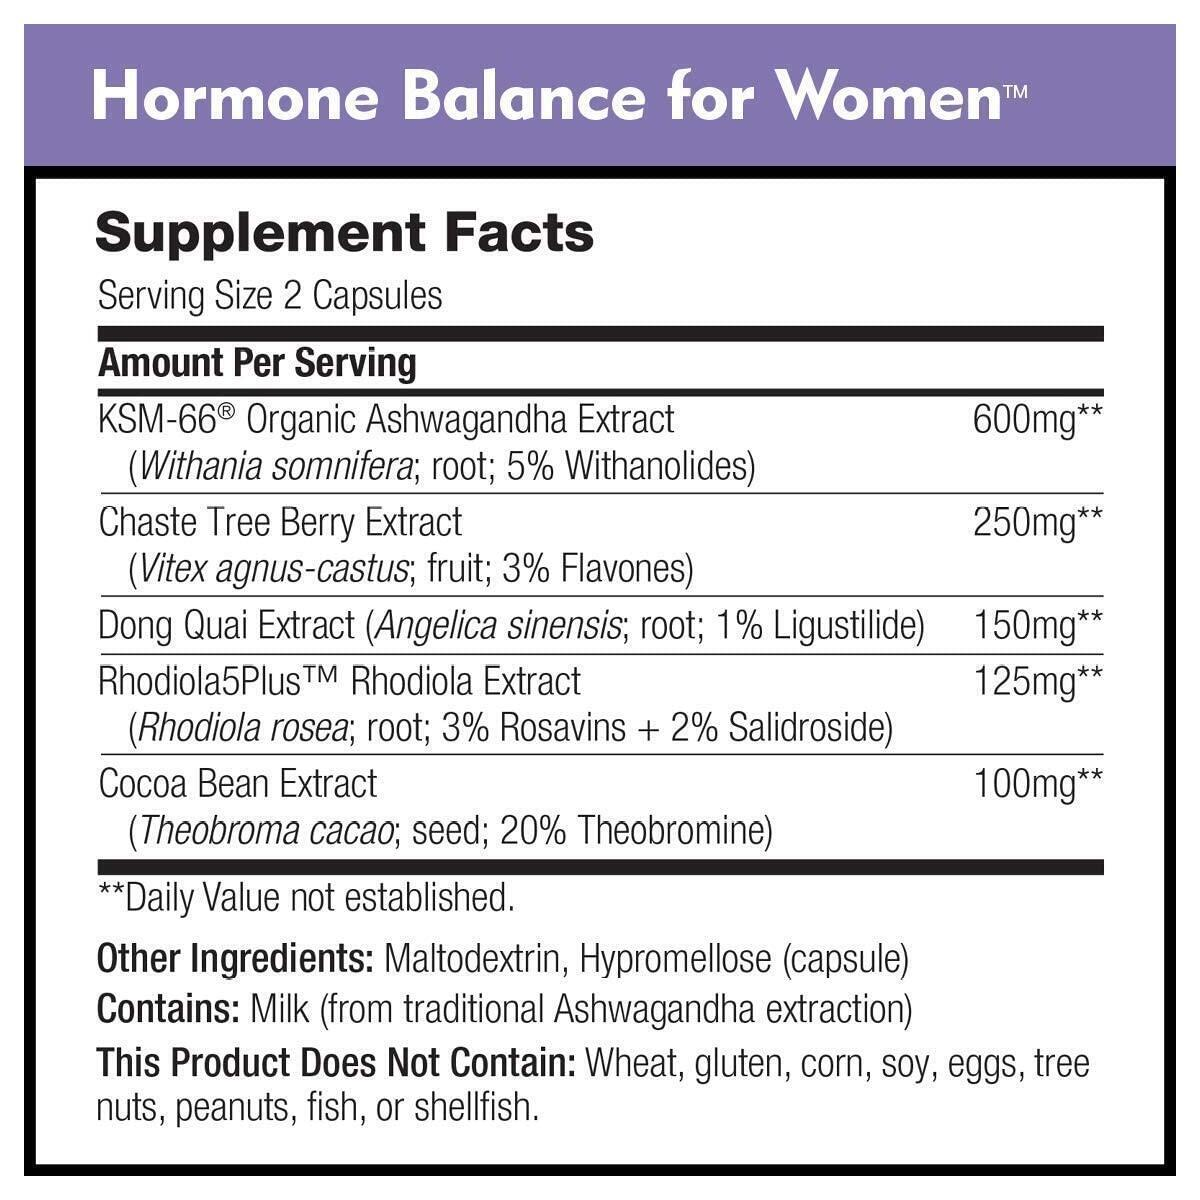 Hormone Balance for Women by DailyNutra - Menopause Support and PMS Relief | Natural Mood Supplement | Featuring Clinically Studied KSM-66 Ashwagandha (90 Capsules)